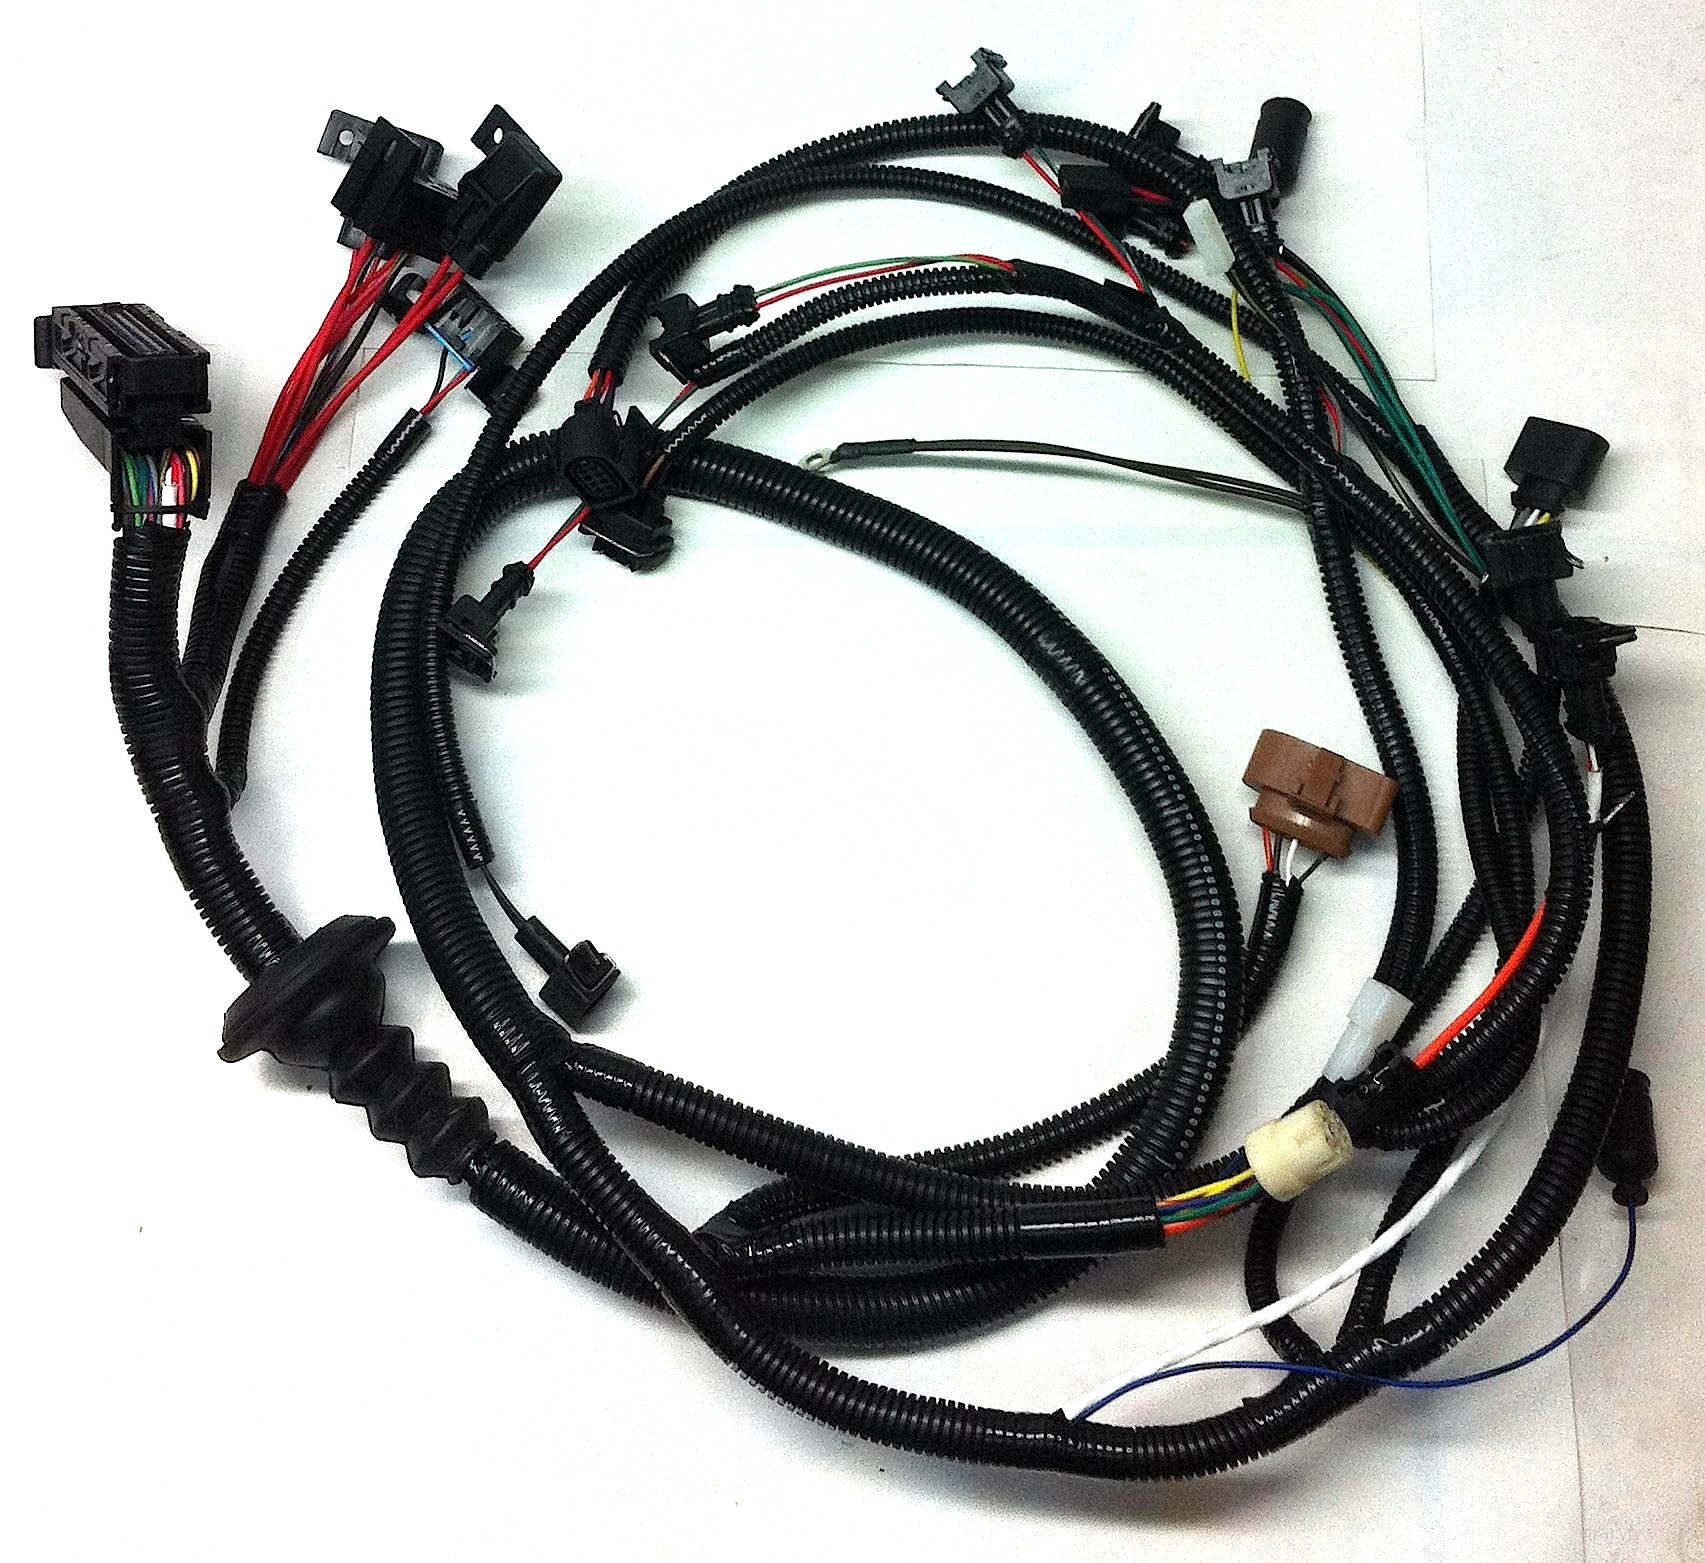 Wiring Harness For Trucks Books Of Diagram 300 Control Rear Chrysler 2006modual 2lr Tiico Conversion Foreign Auto Supply Inc Rh Foreignautosupply Com